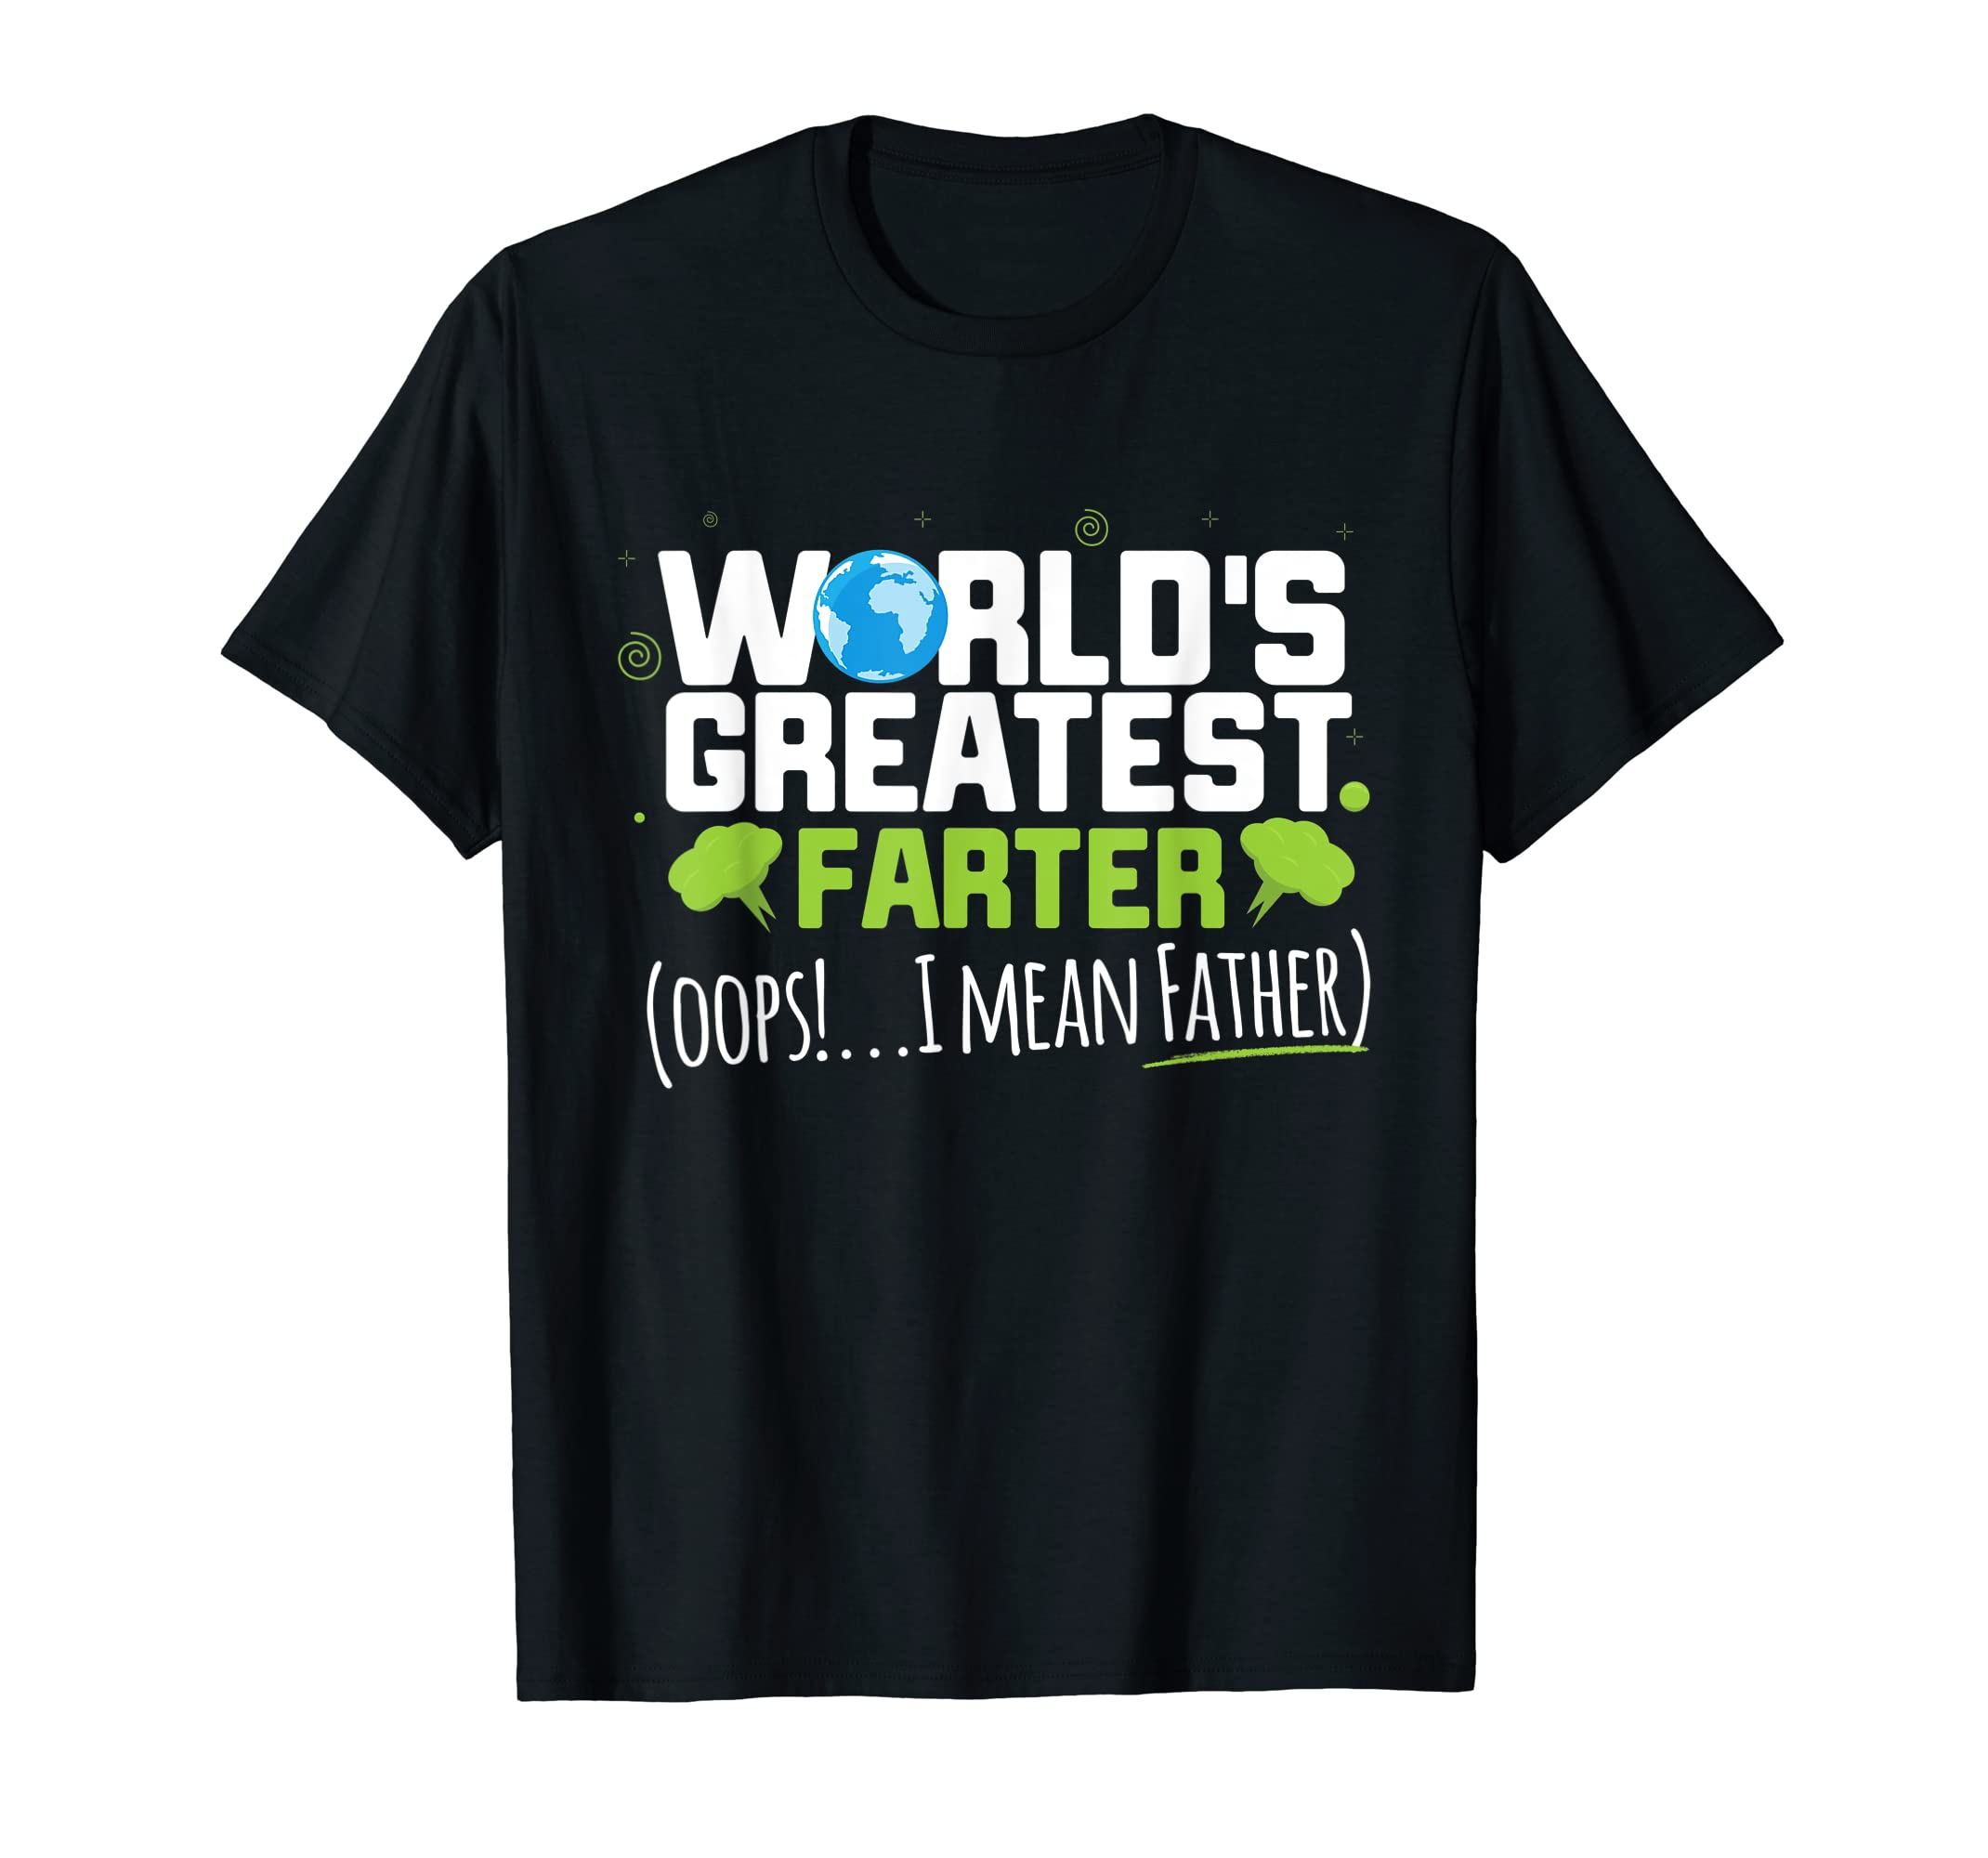 Mens World's Greatest Farter Oops! I Mean Father Shirt-Men's T-Shirt-Black